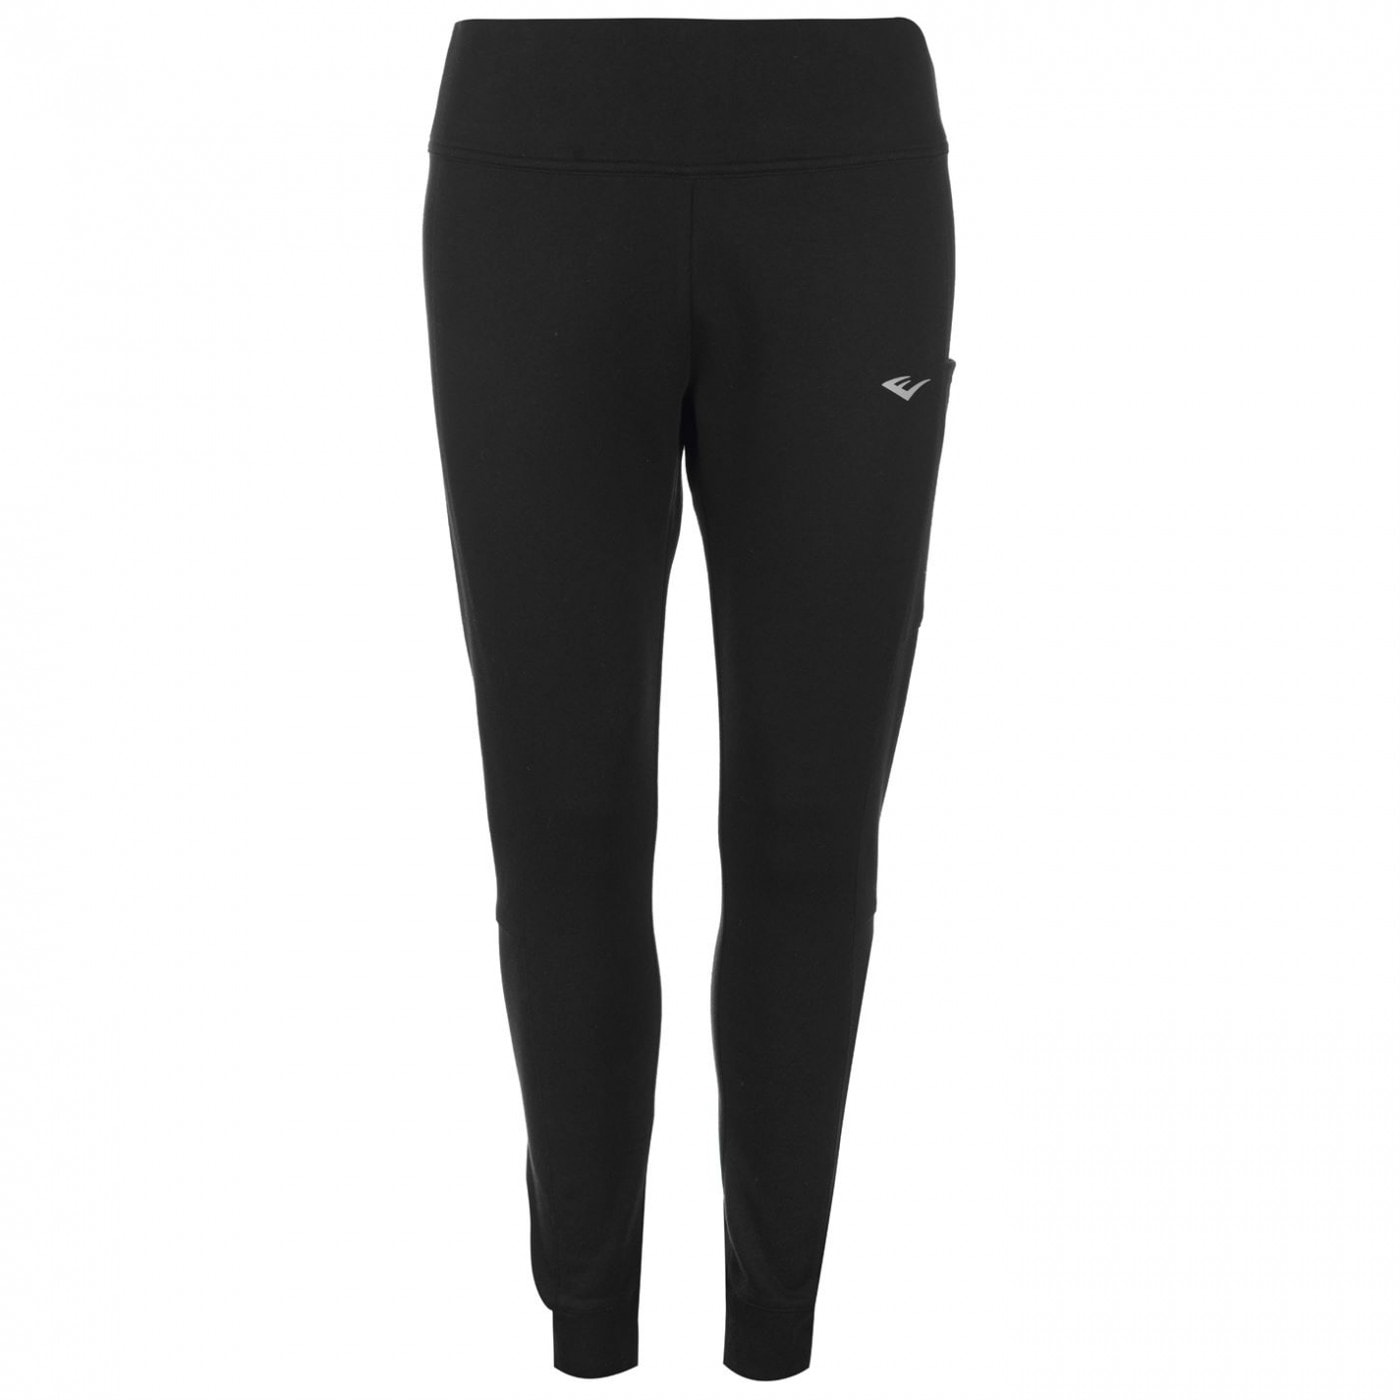 Everlast Urban Leggings Ladies